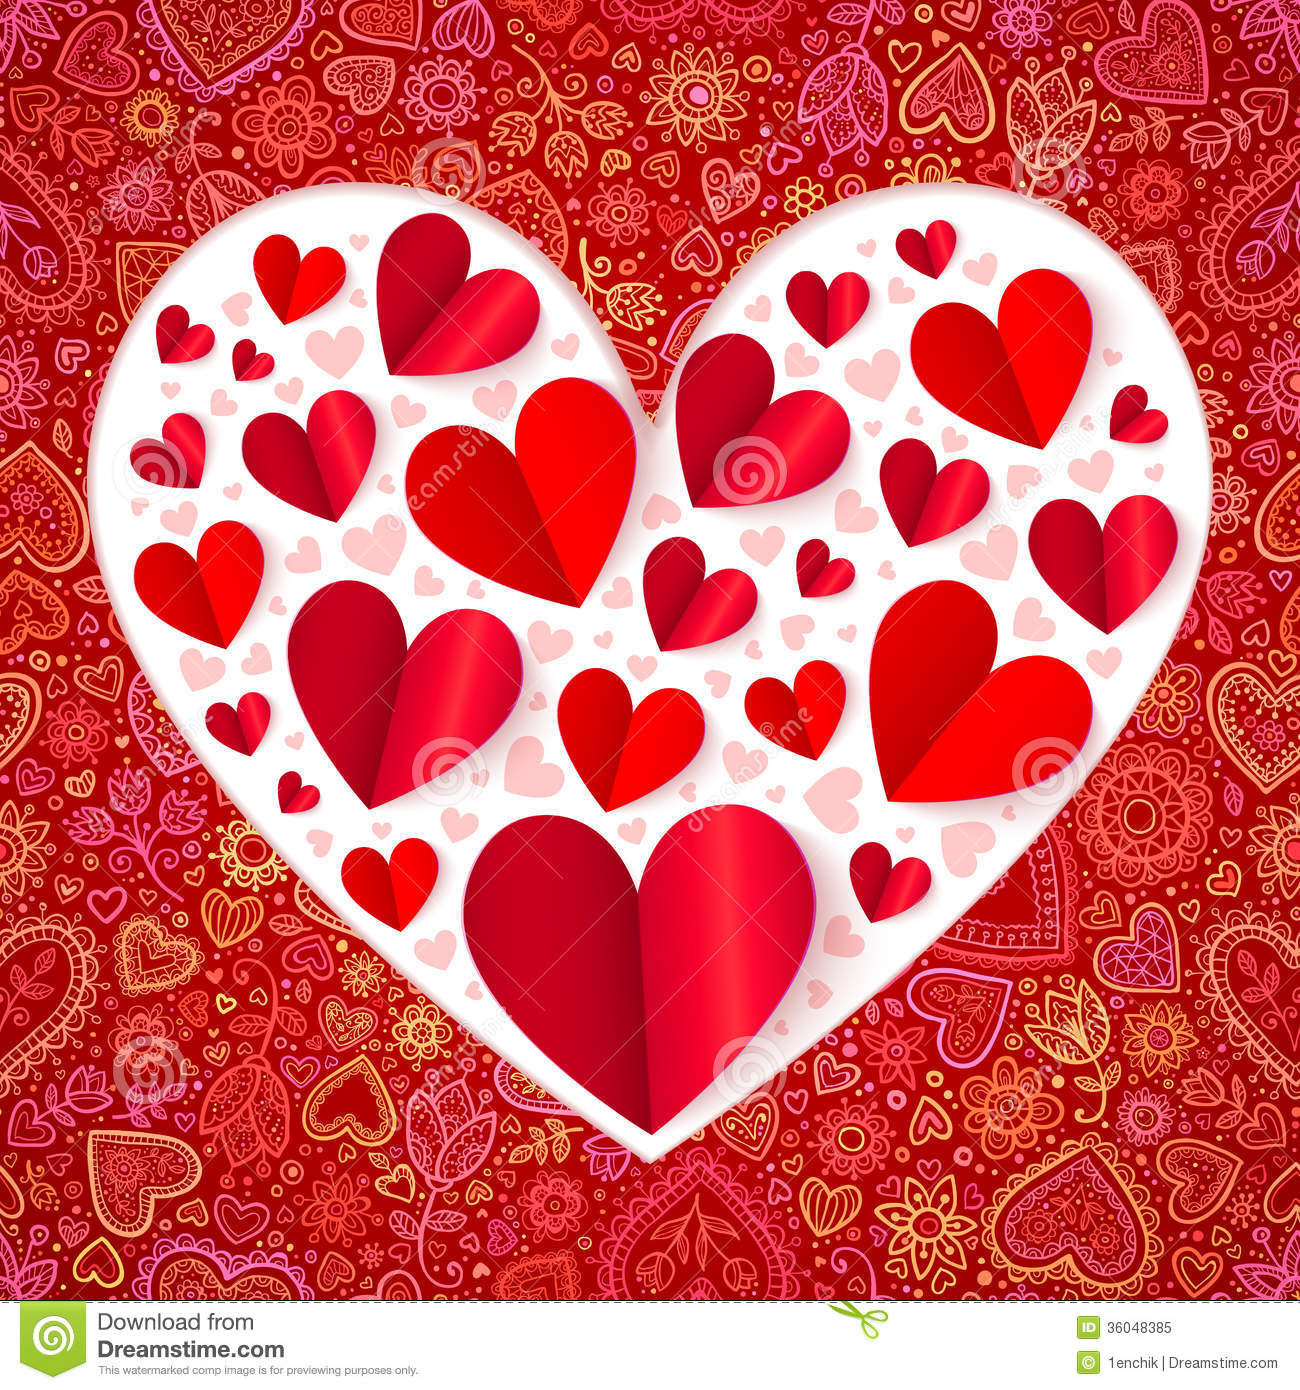 ... Cutout Paper Vector Heart Royalty Free Stock Photo - Image: 36048385